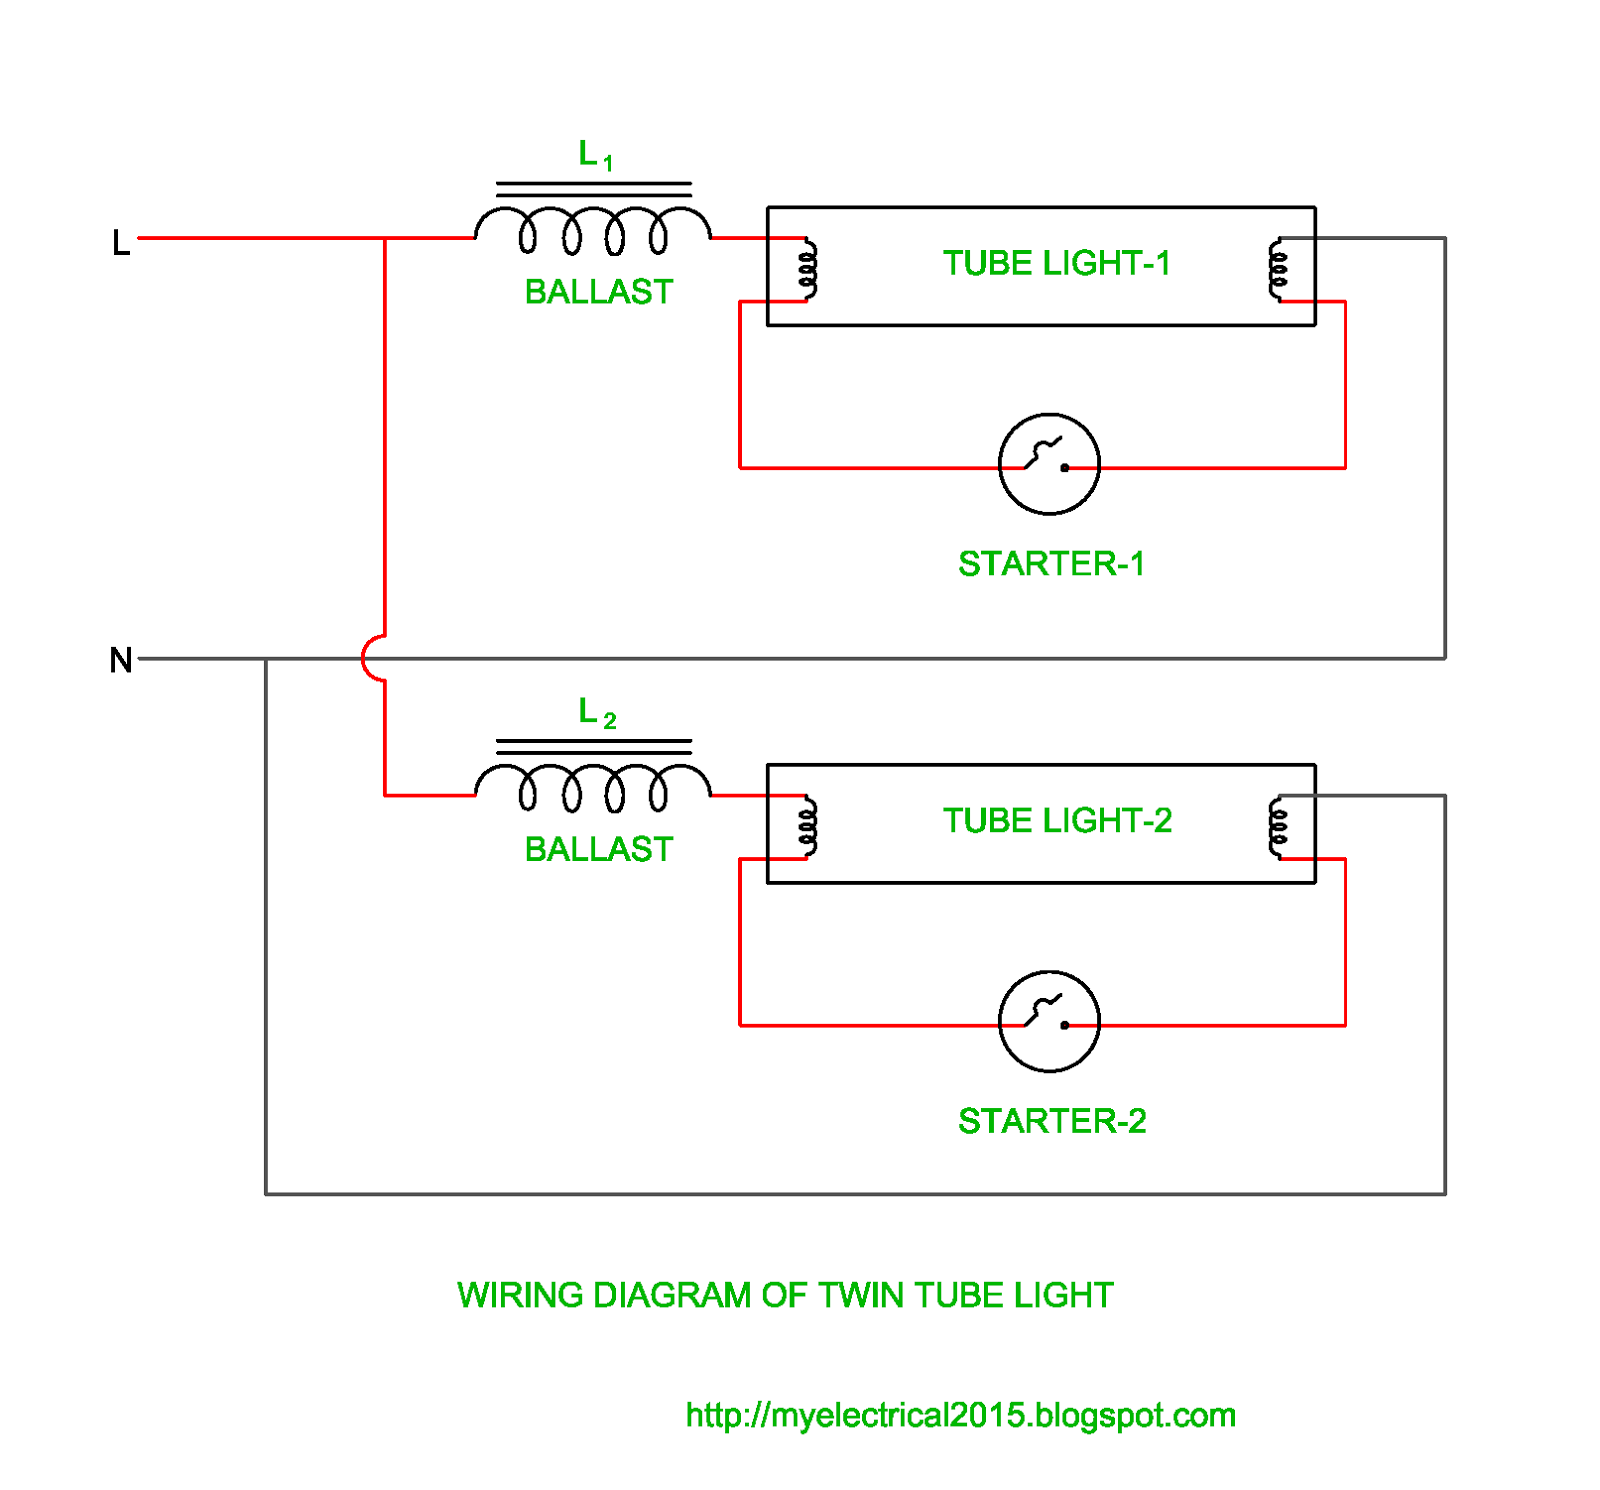 small resolution of wiring diagram of twin tube light